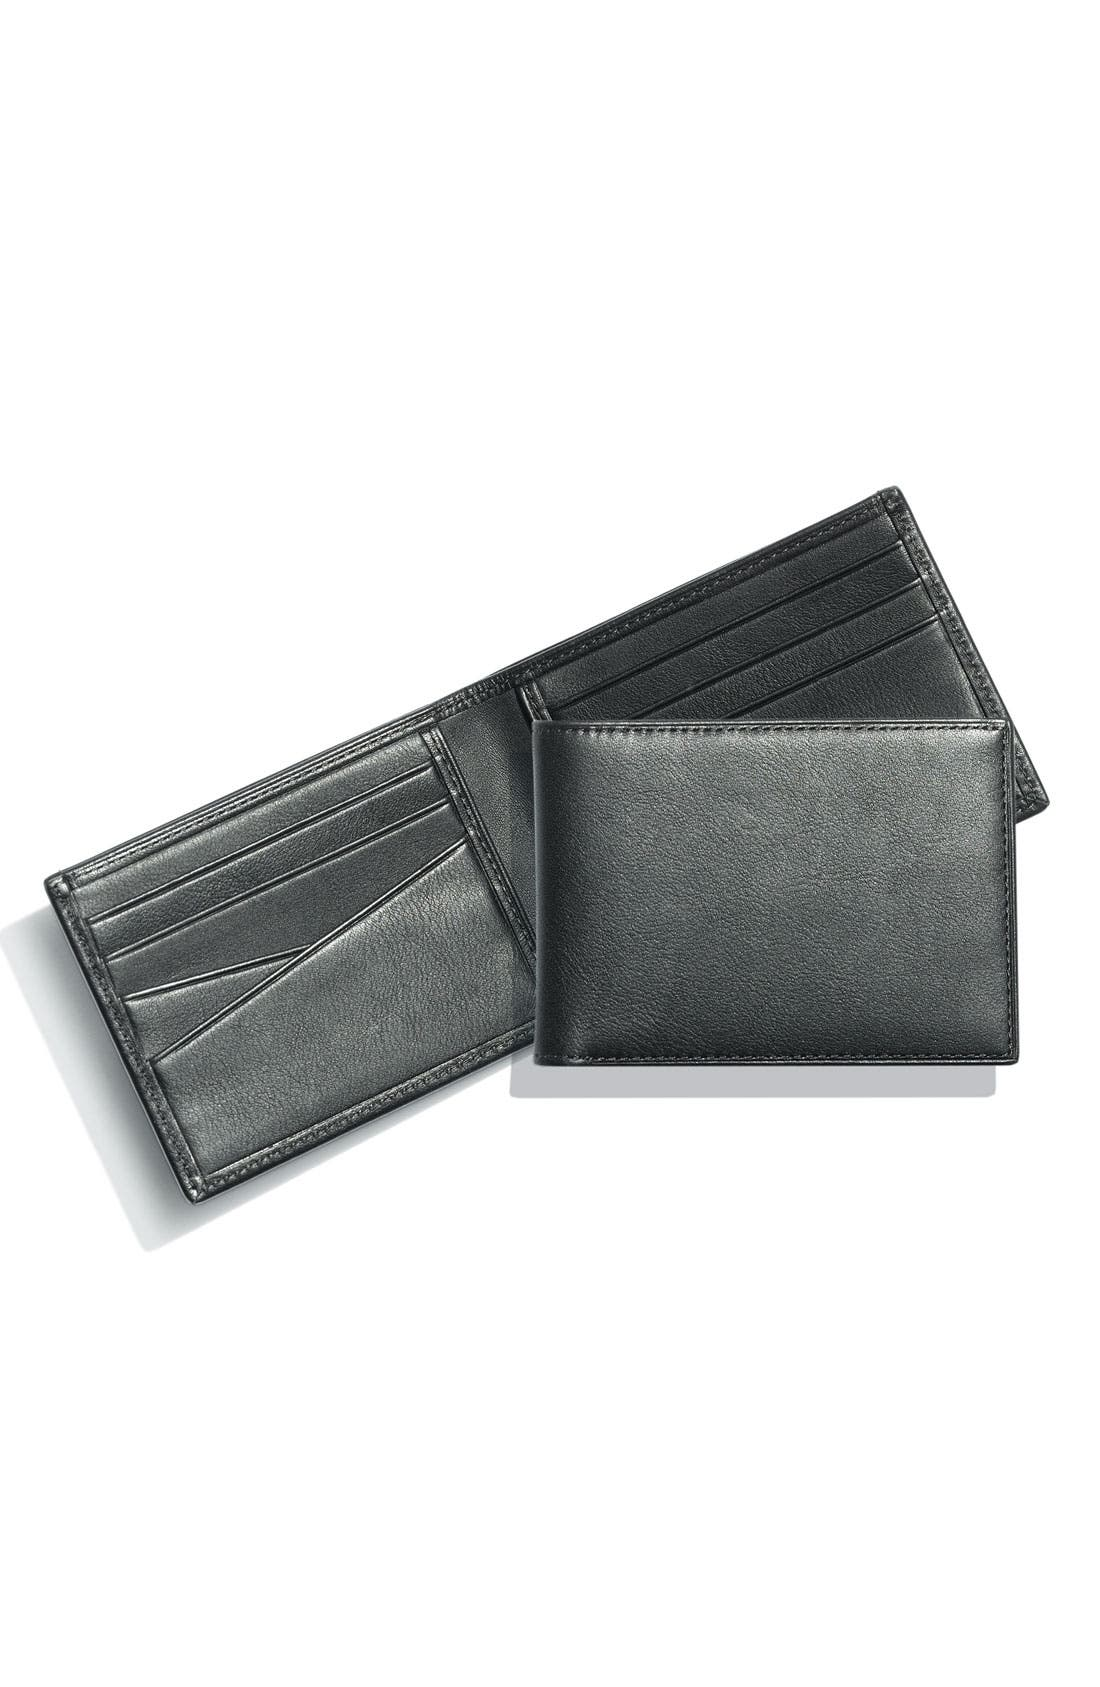 Small Bifold Wallet,                             Alternate thumbnail 2, color,                             001